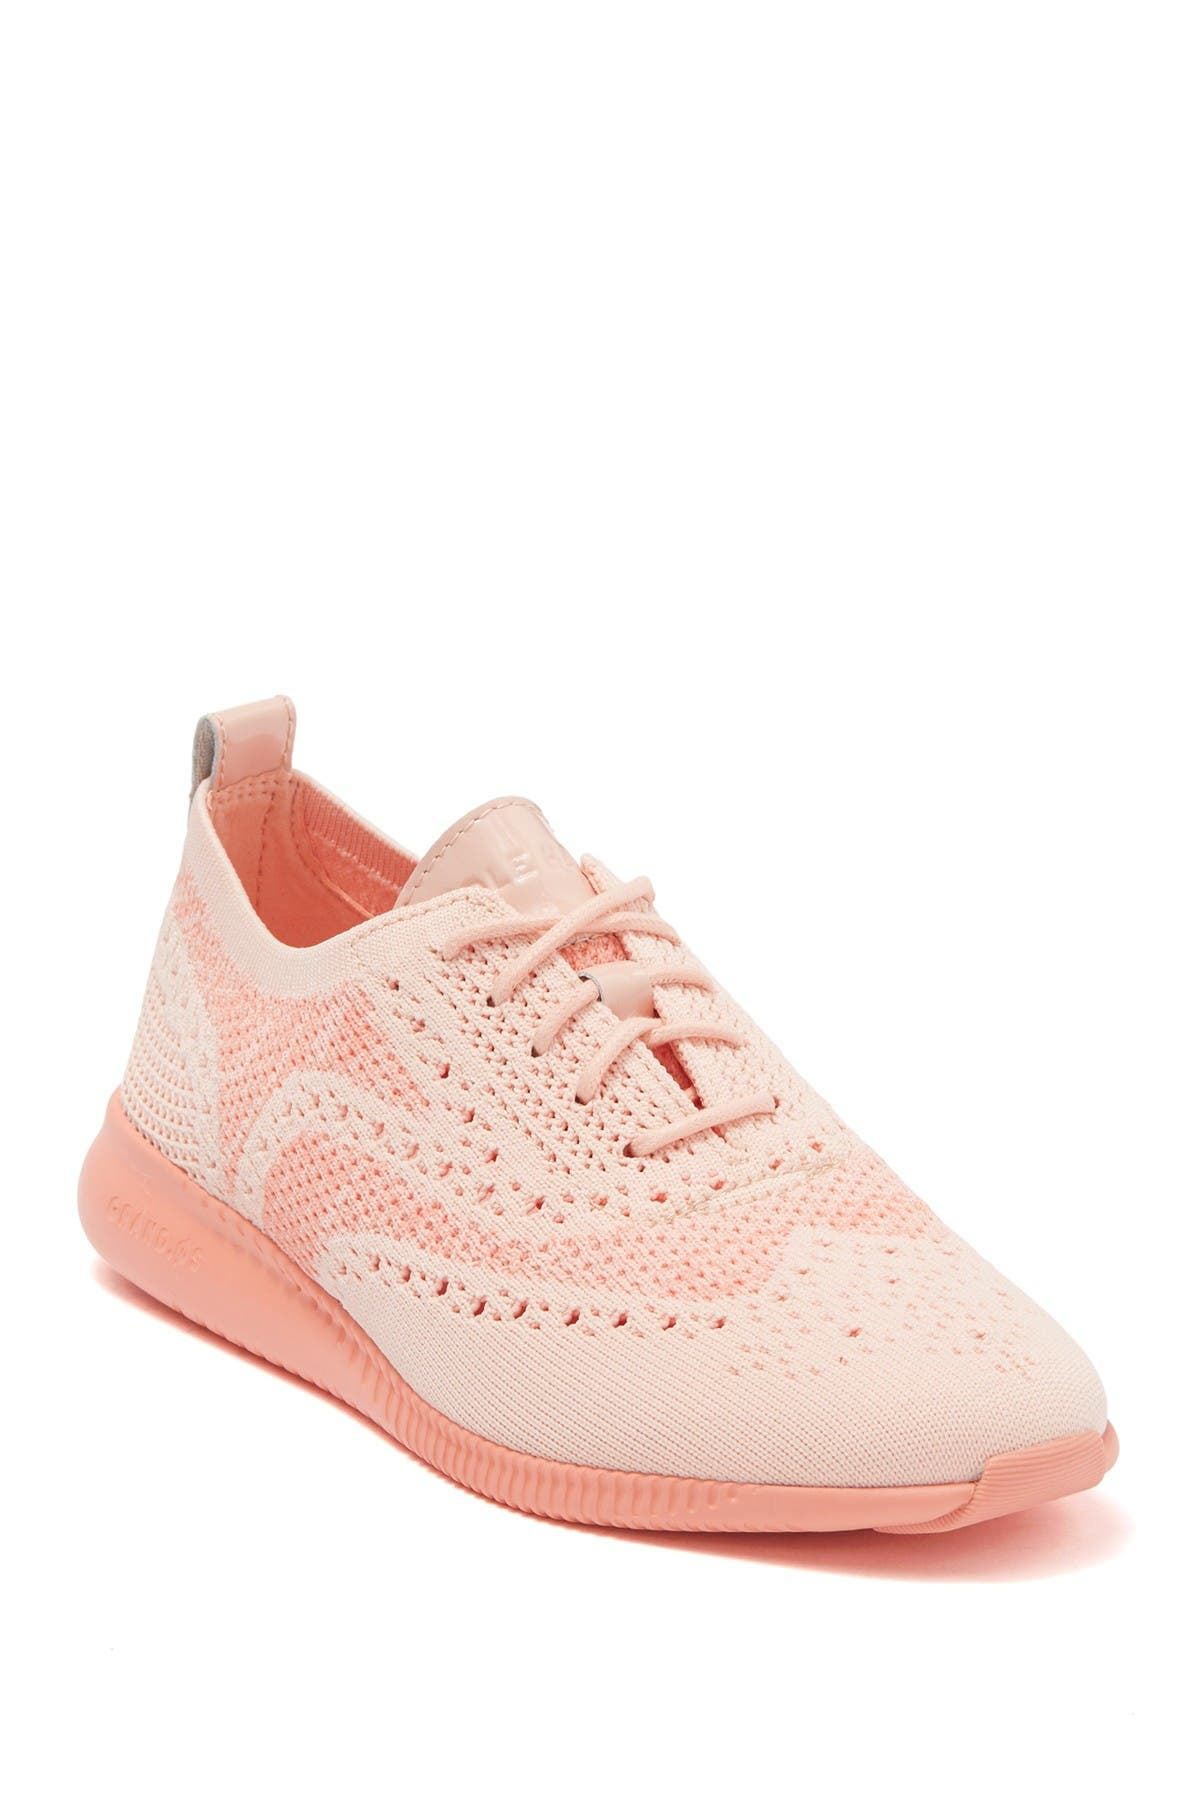 Image of Cole Haan Zerogrand Stitchlite Knit Sneaker